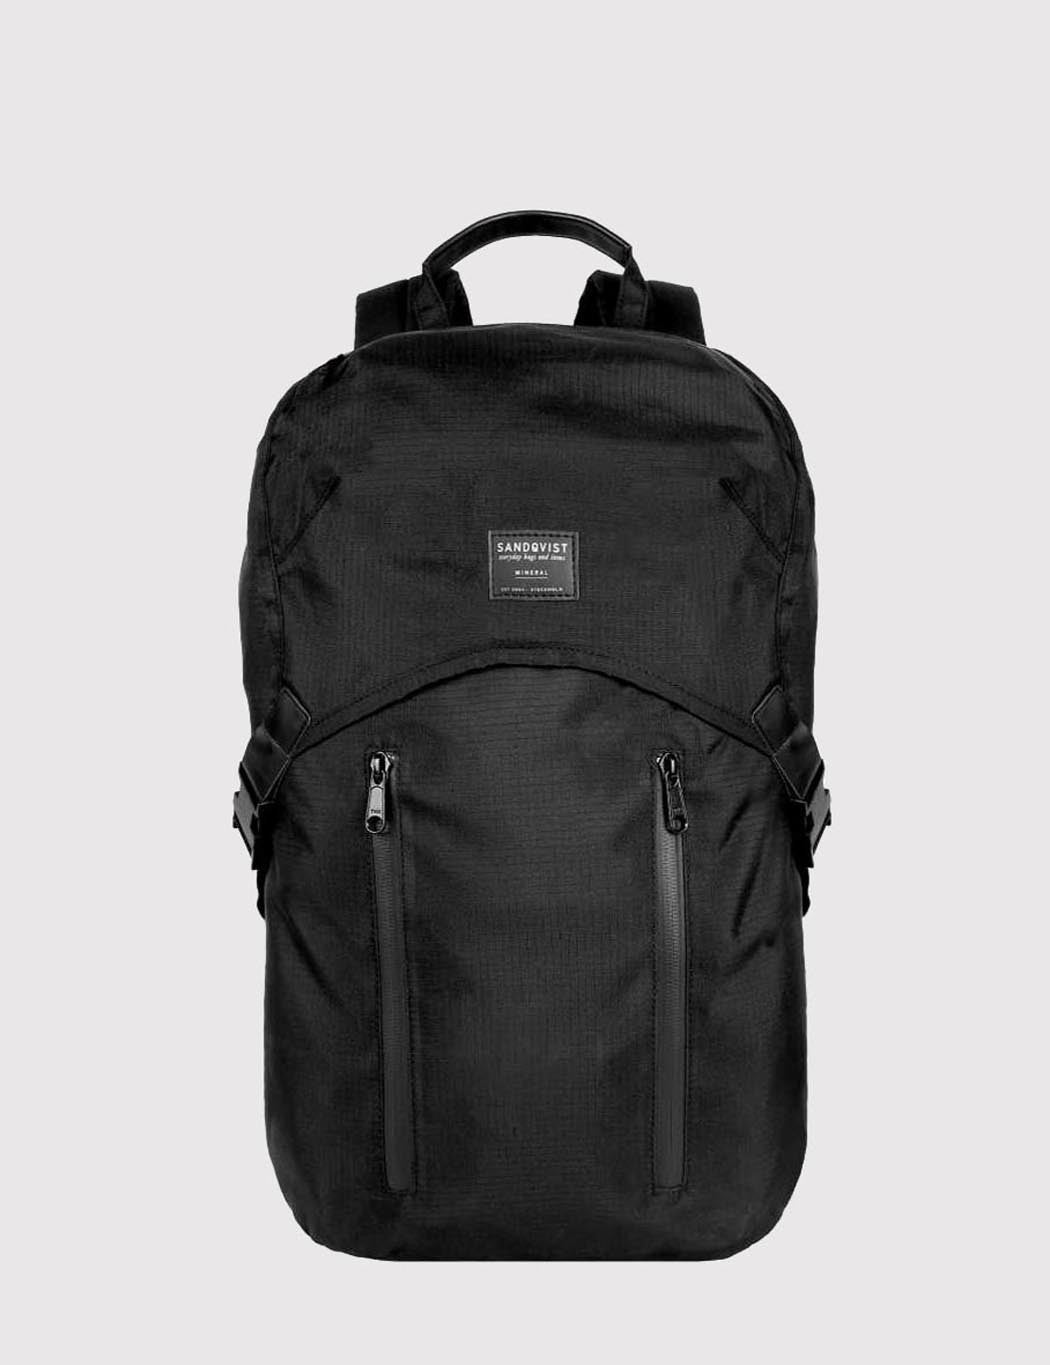 Sandqvist Leo Backpack (Ripstop) - Black